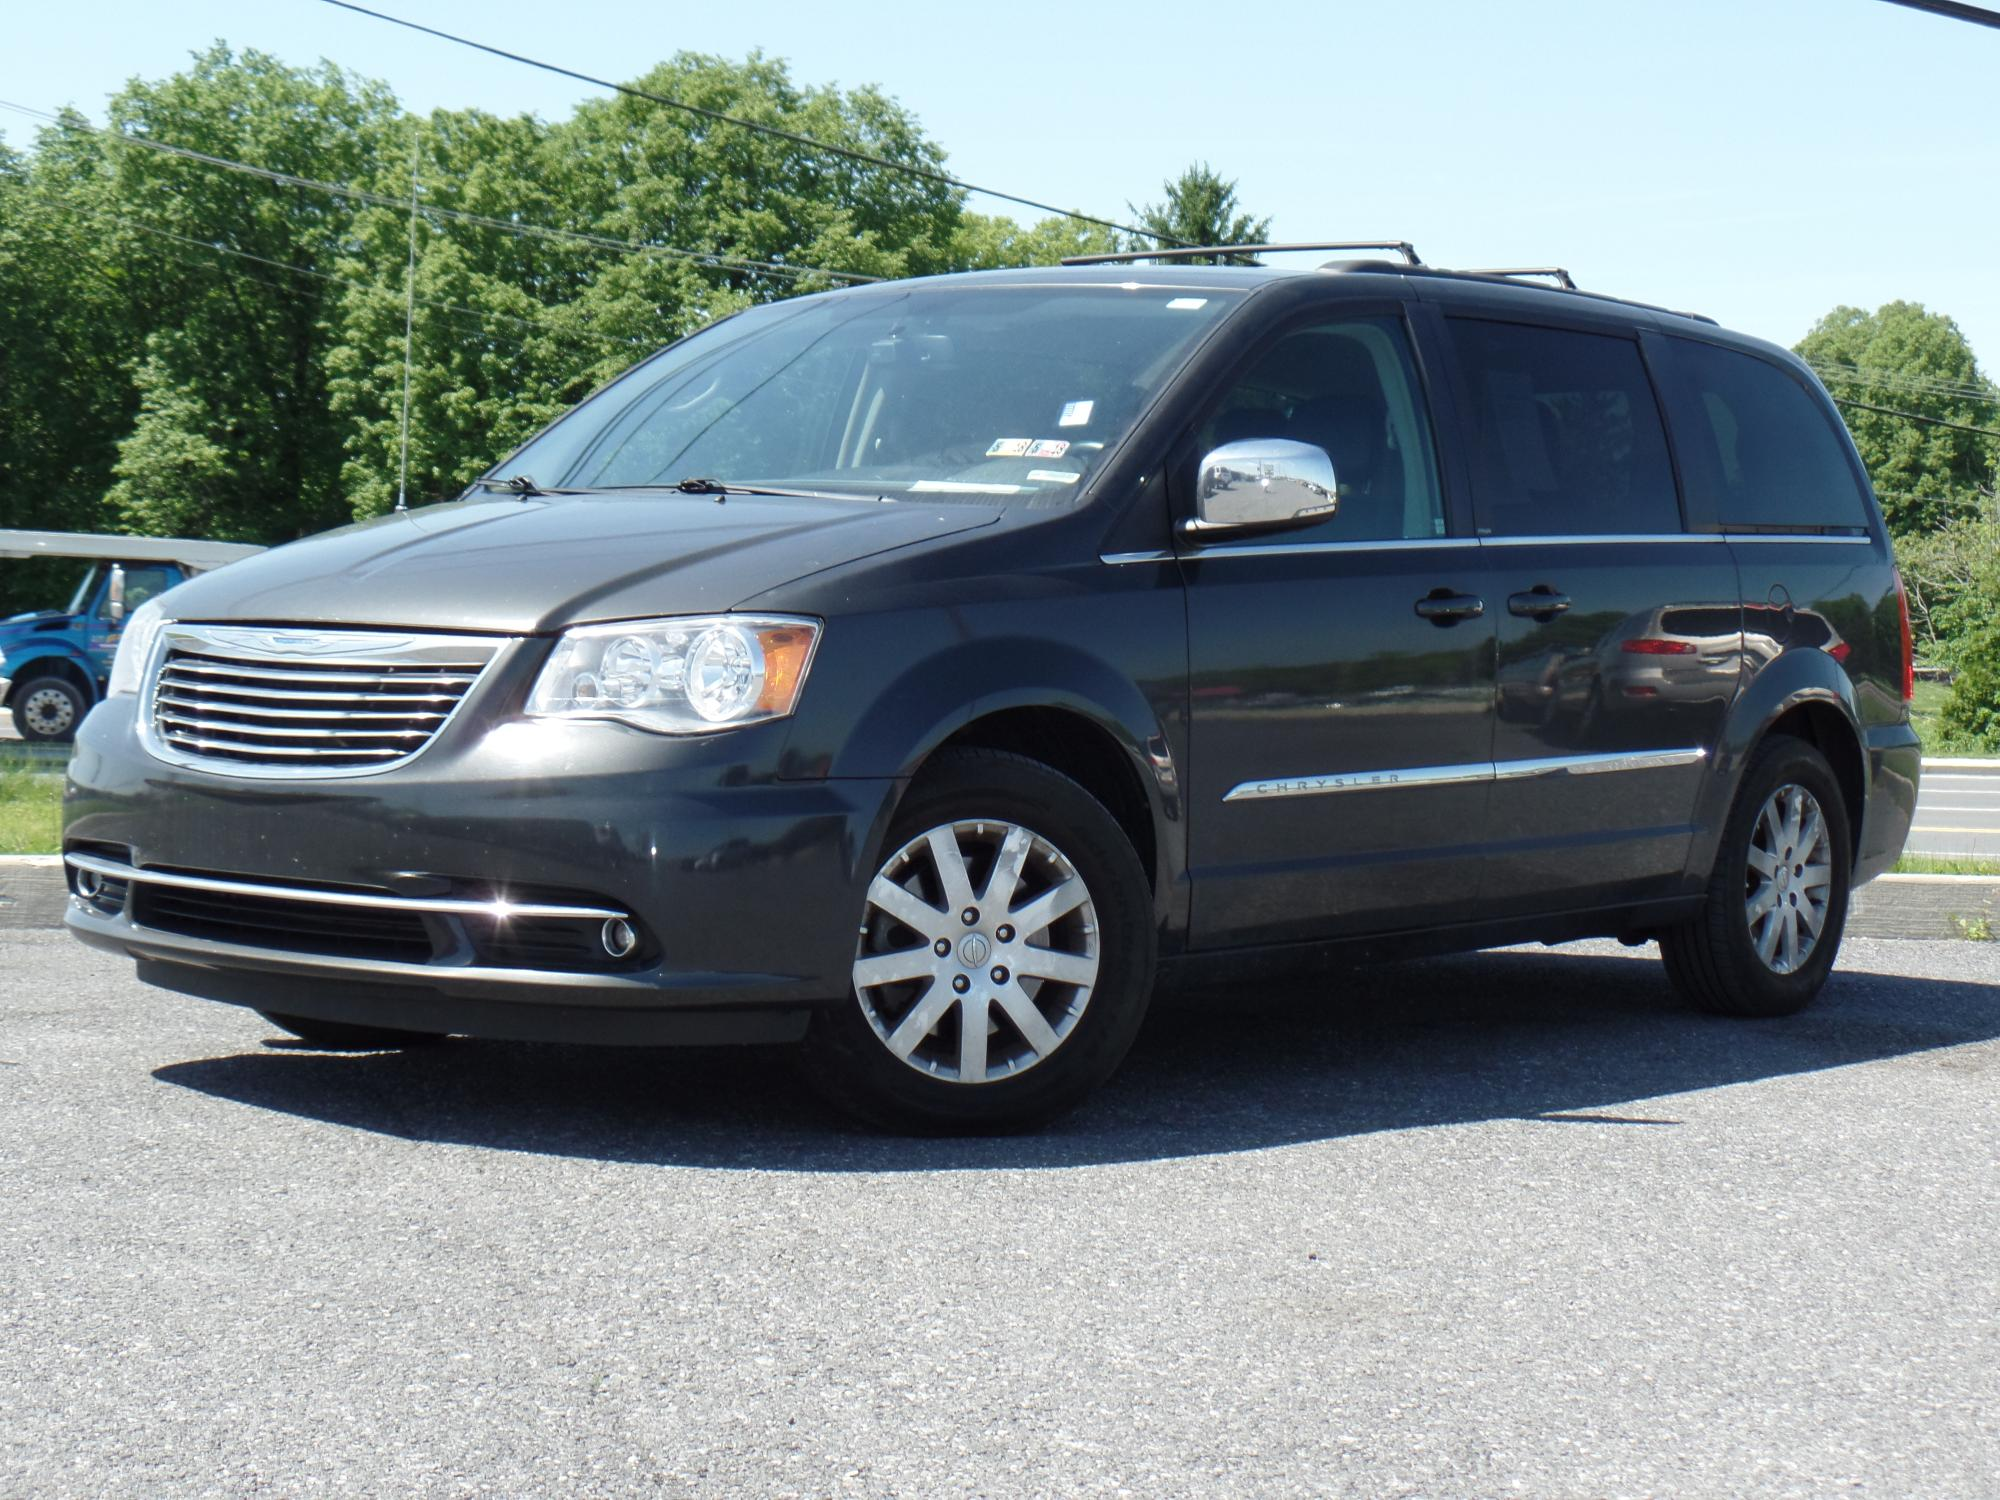 5-21-2018_2012_Chrysler_Town_and_Country_195632__1_.JPG